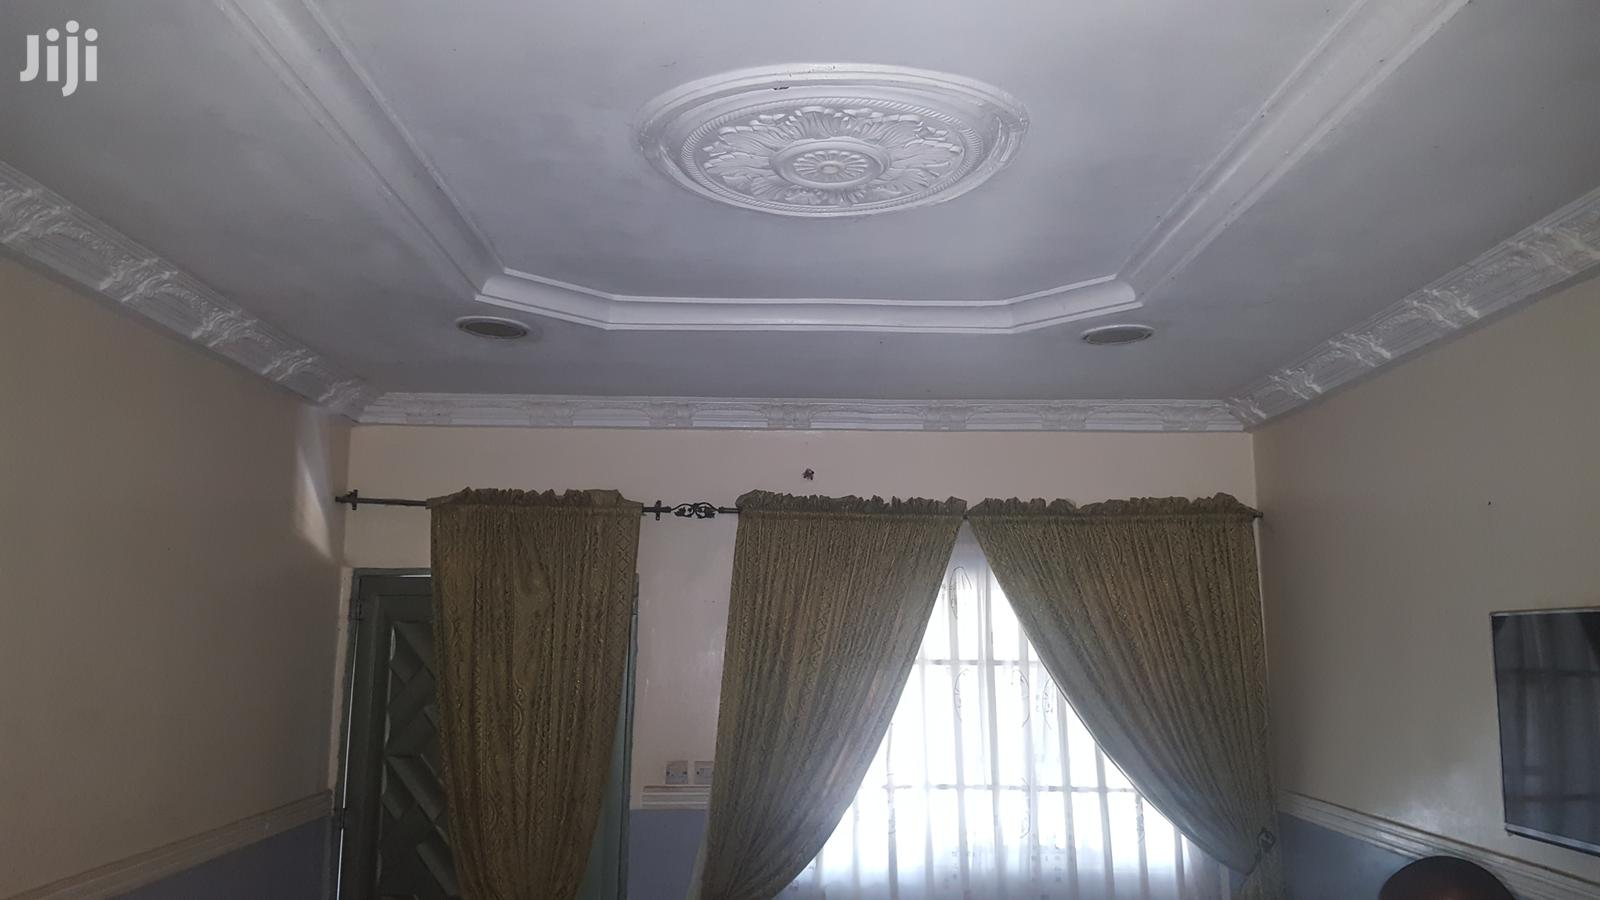 For Sale: 4 Bedrooms Flat at Ikot Ambon Off Aka Nung Udoe Road. | Houses & Apartments For Sale for sale in Uyo, Akwa Ibom State, Nigeria